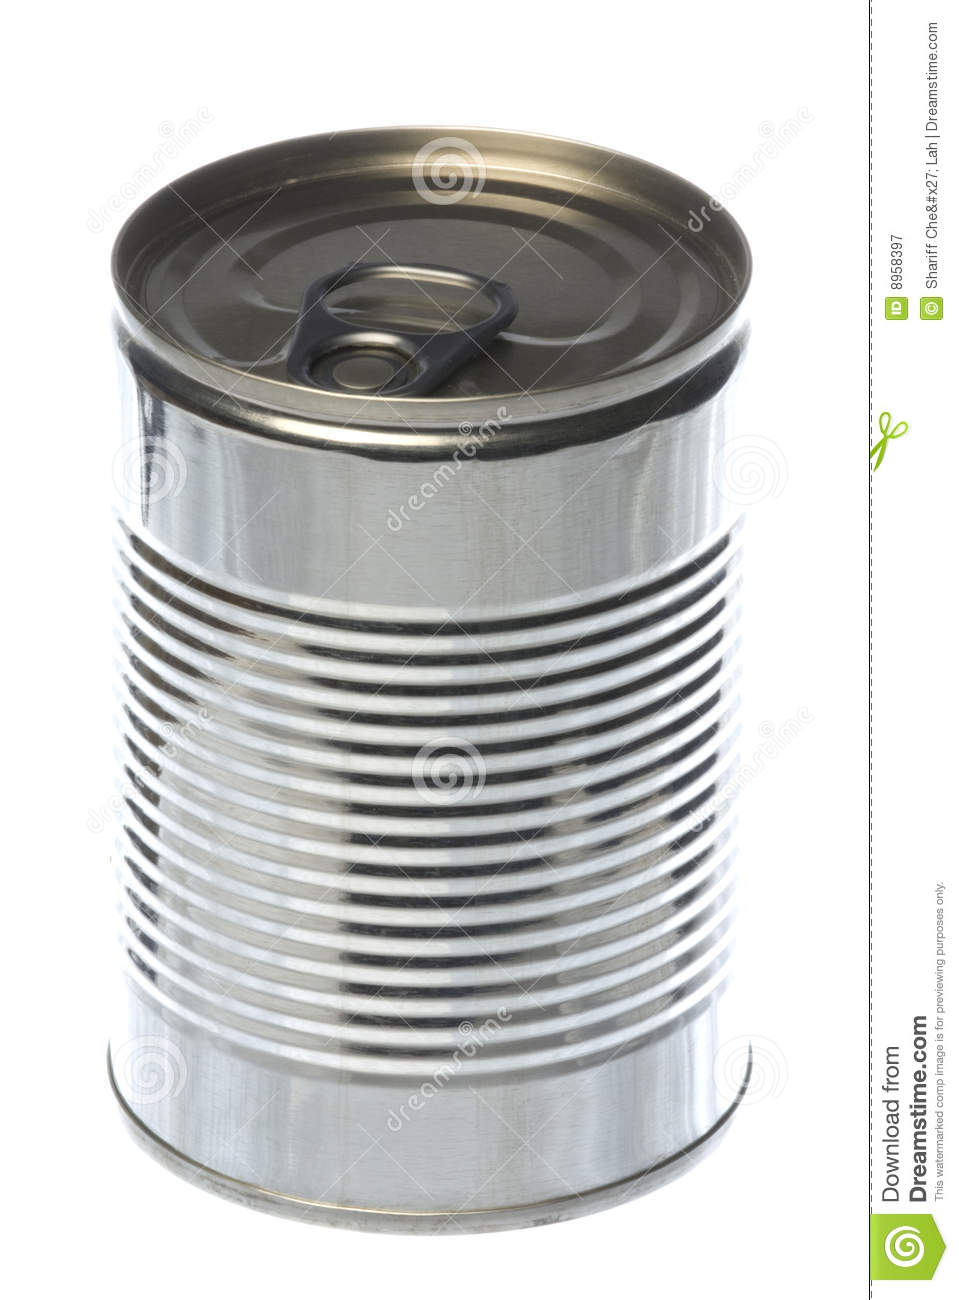 Tin Can Isolated Stock Image. Image Of Conserve, Preserve